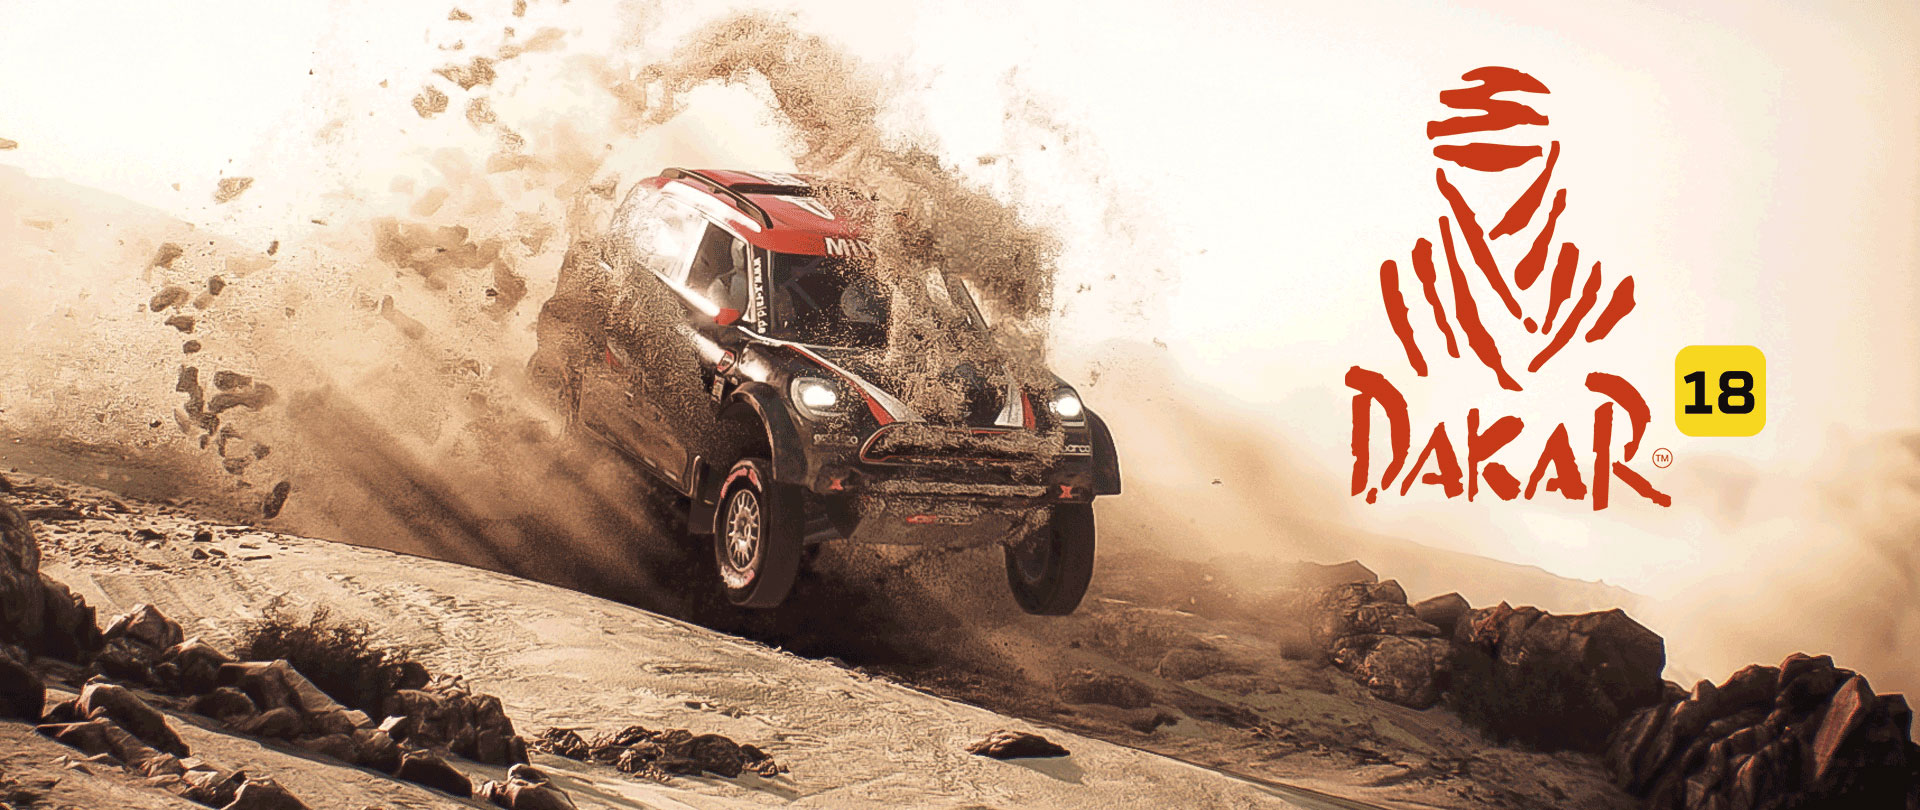 Dakar 18 Region europe key